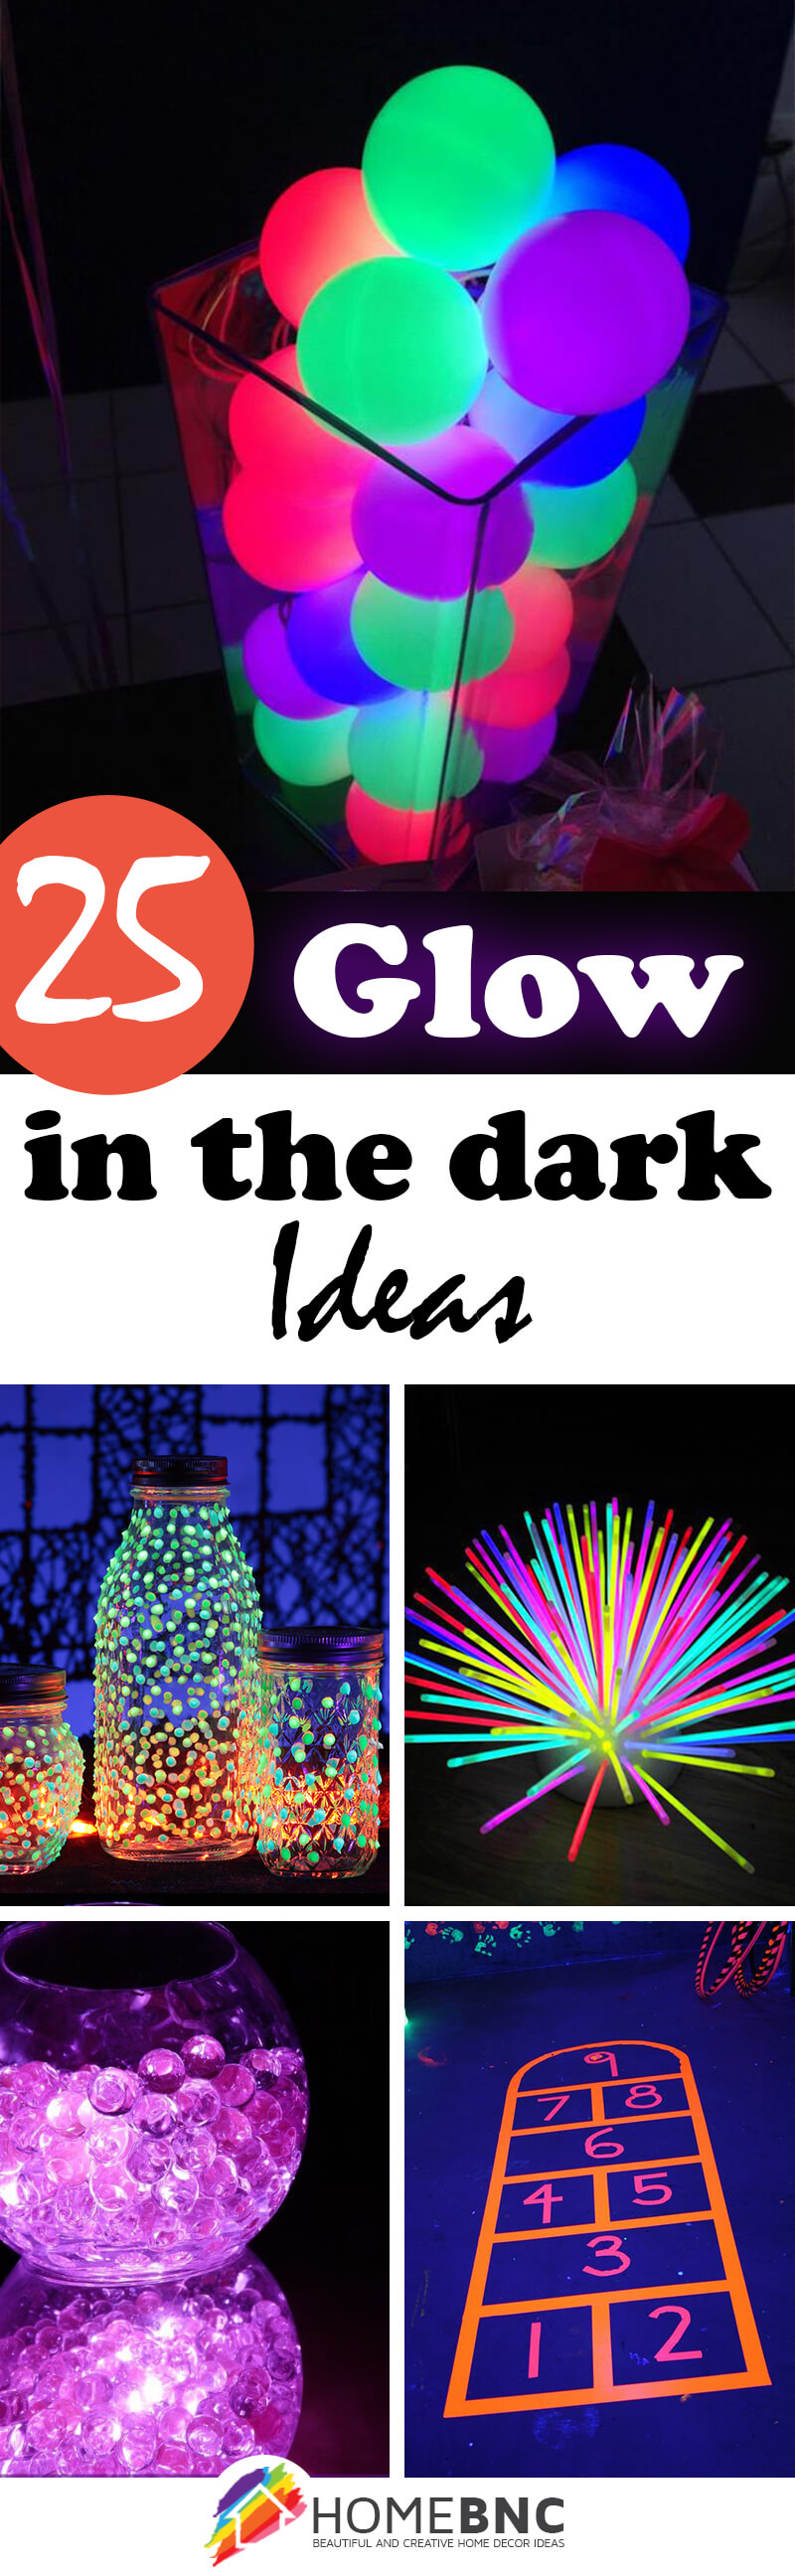 the dark party up decorations ideas idea and decor glow light in wear